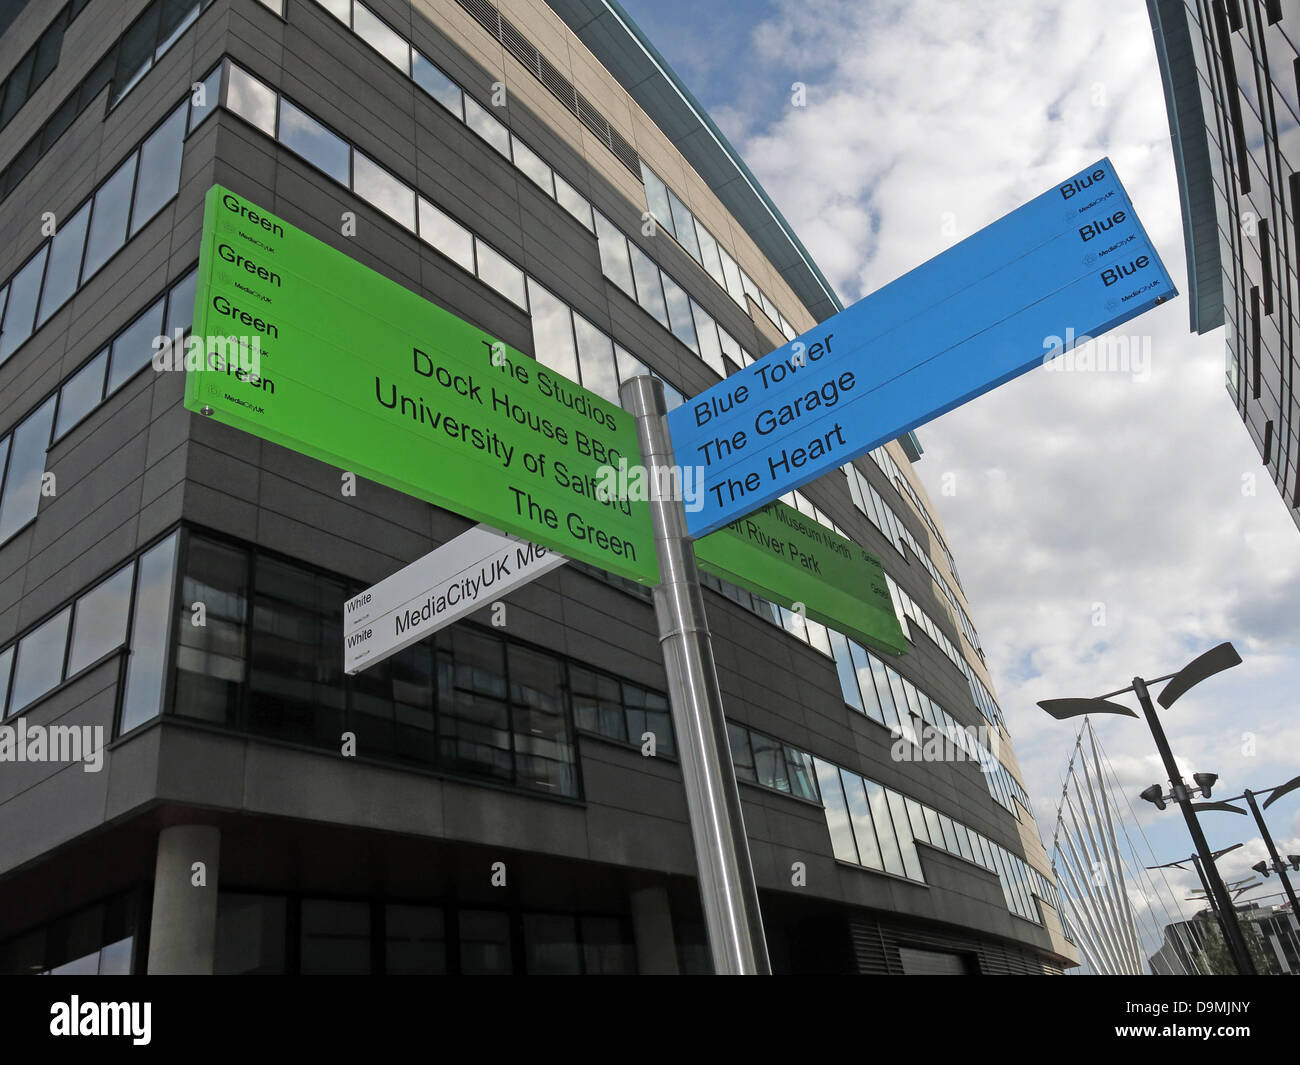 Sign posts at BBC Salford Media City UK Manchester UK - Stock Image